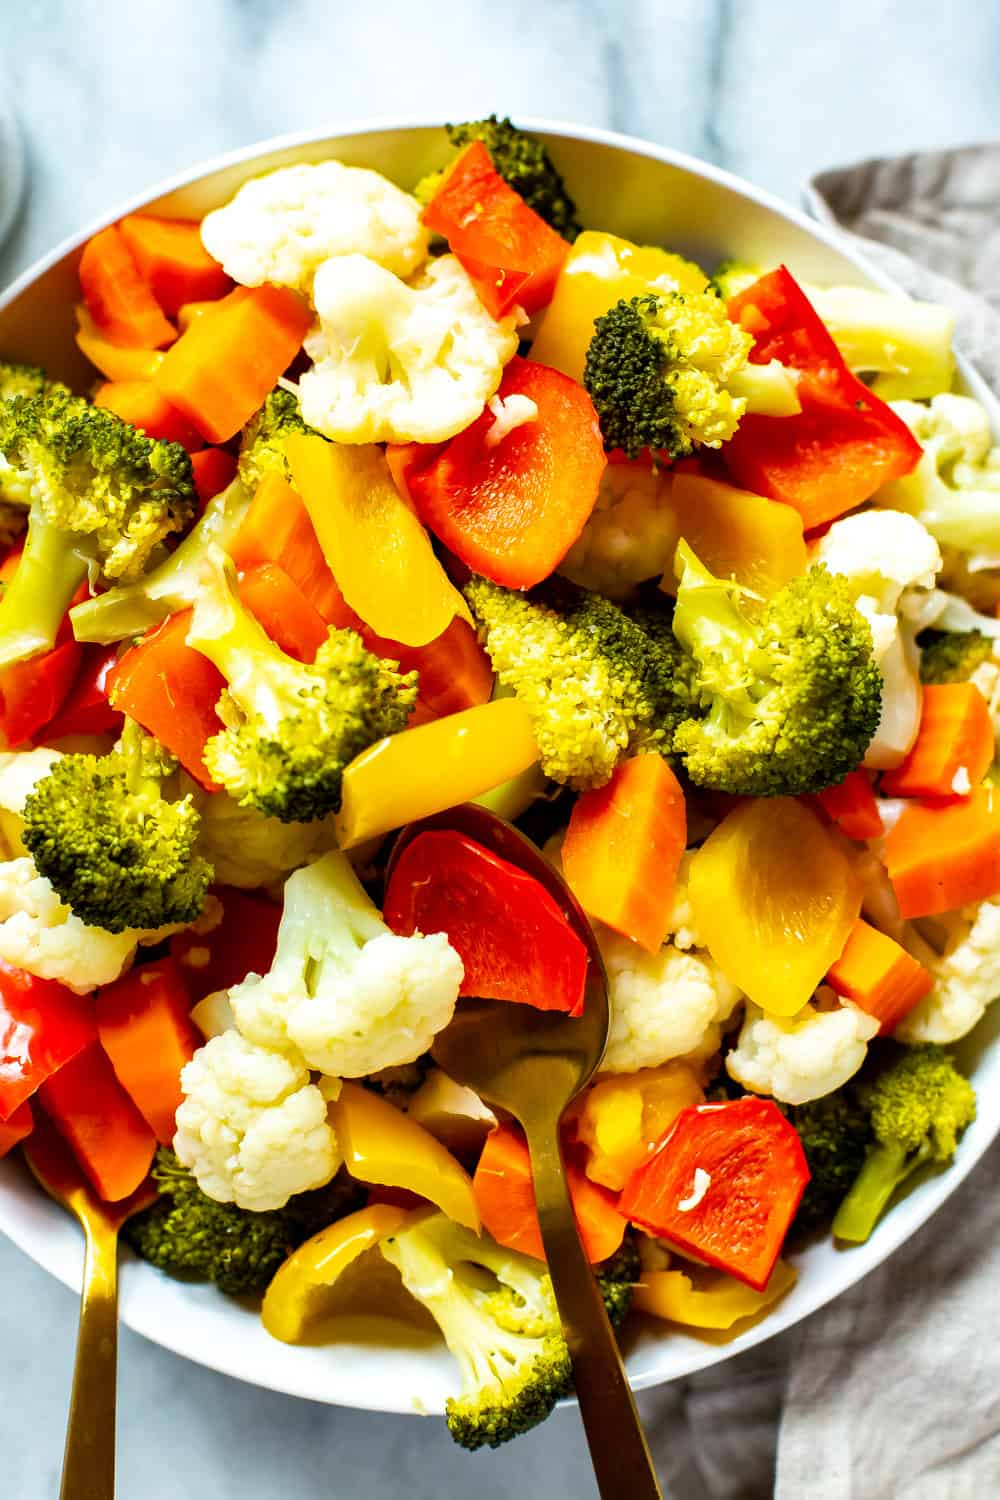 steamed broccoli, cauliflower, and carrots in a large white bowl